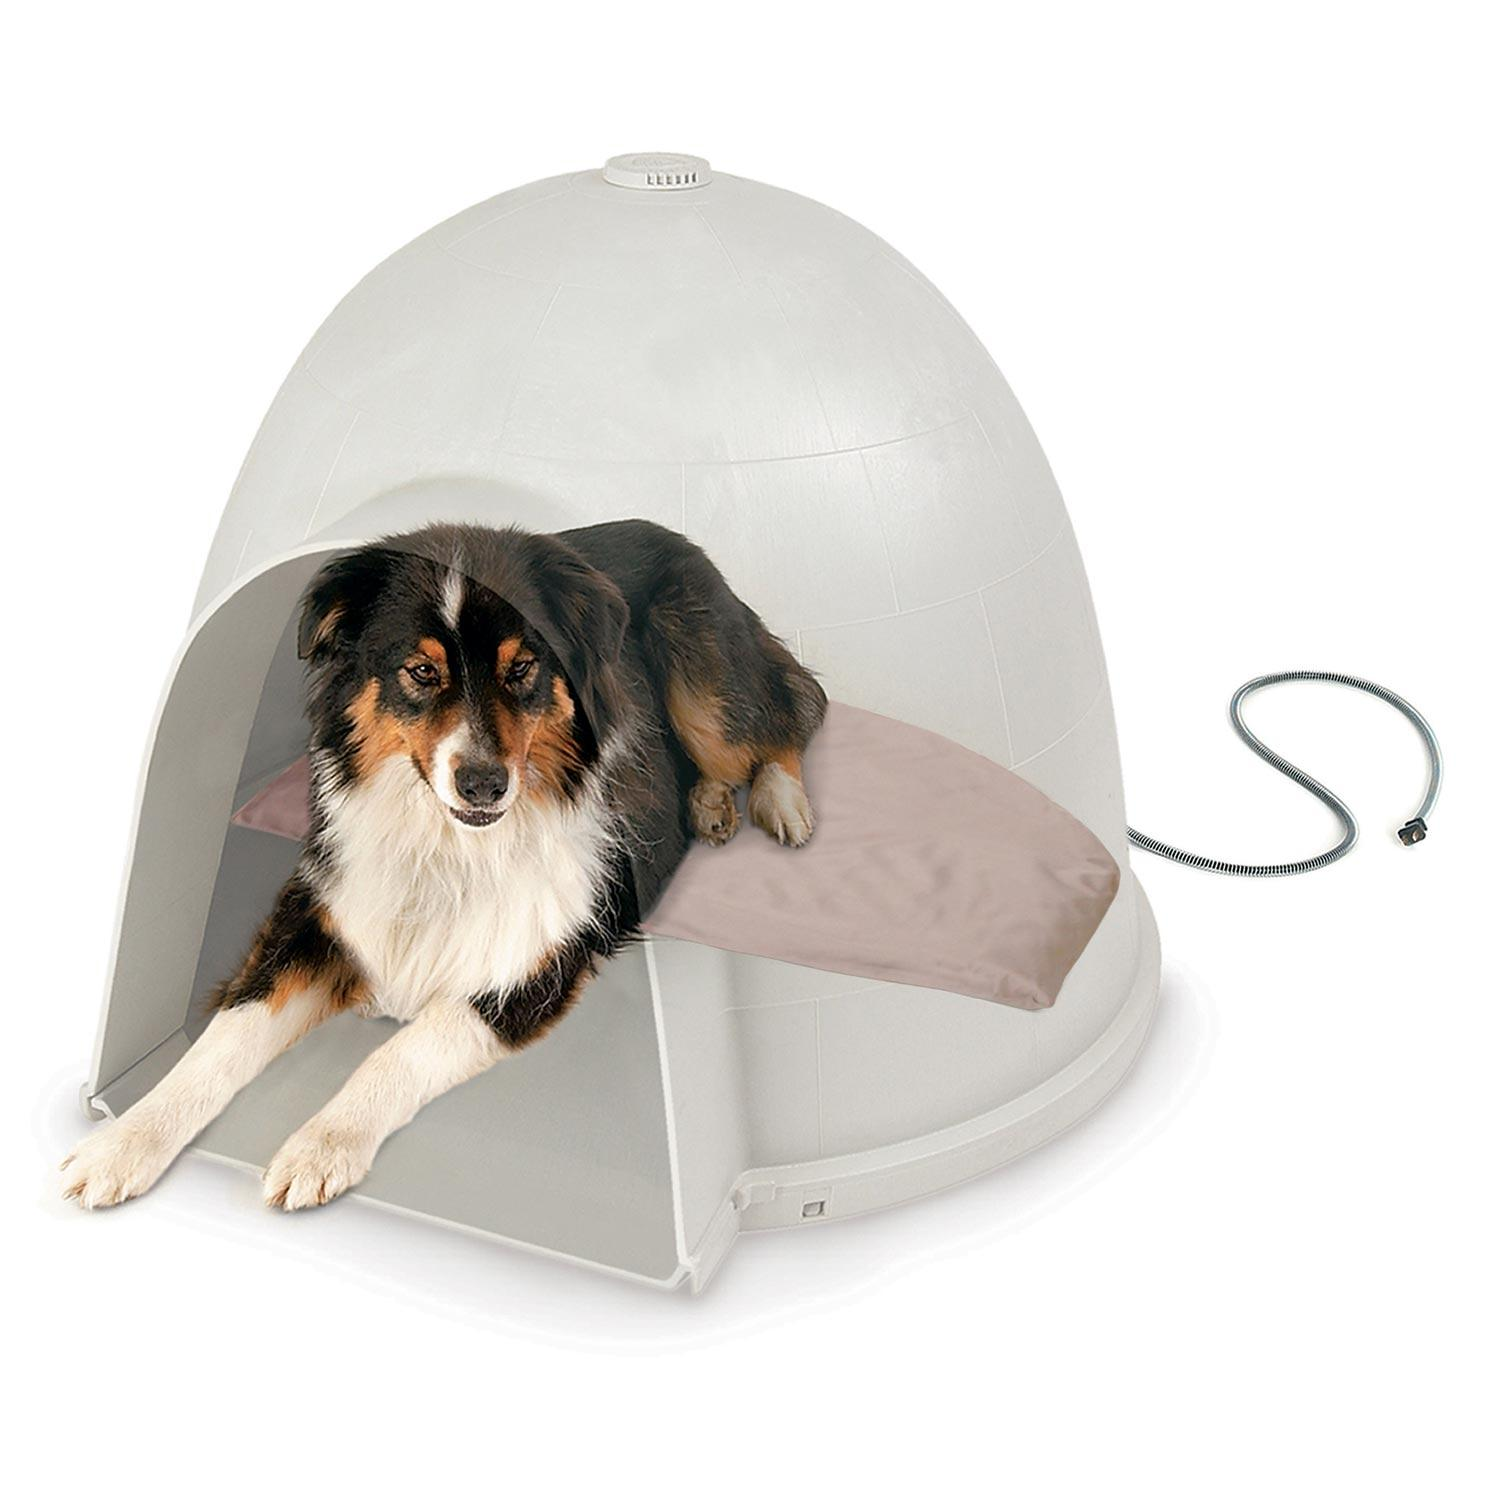 Pet kennels for cats